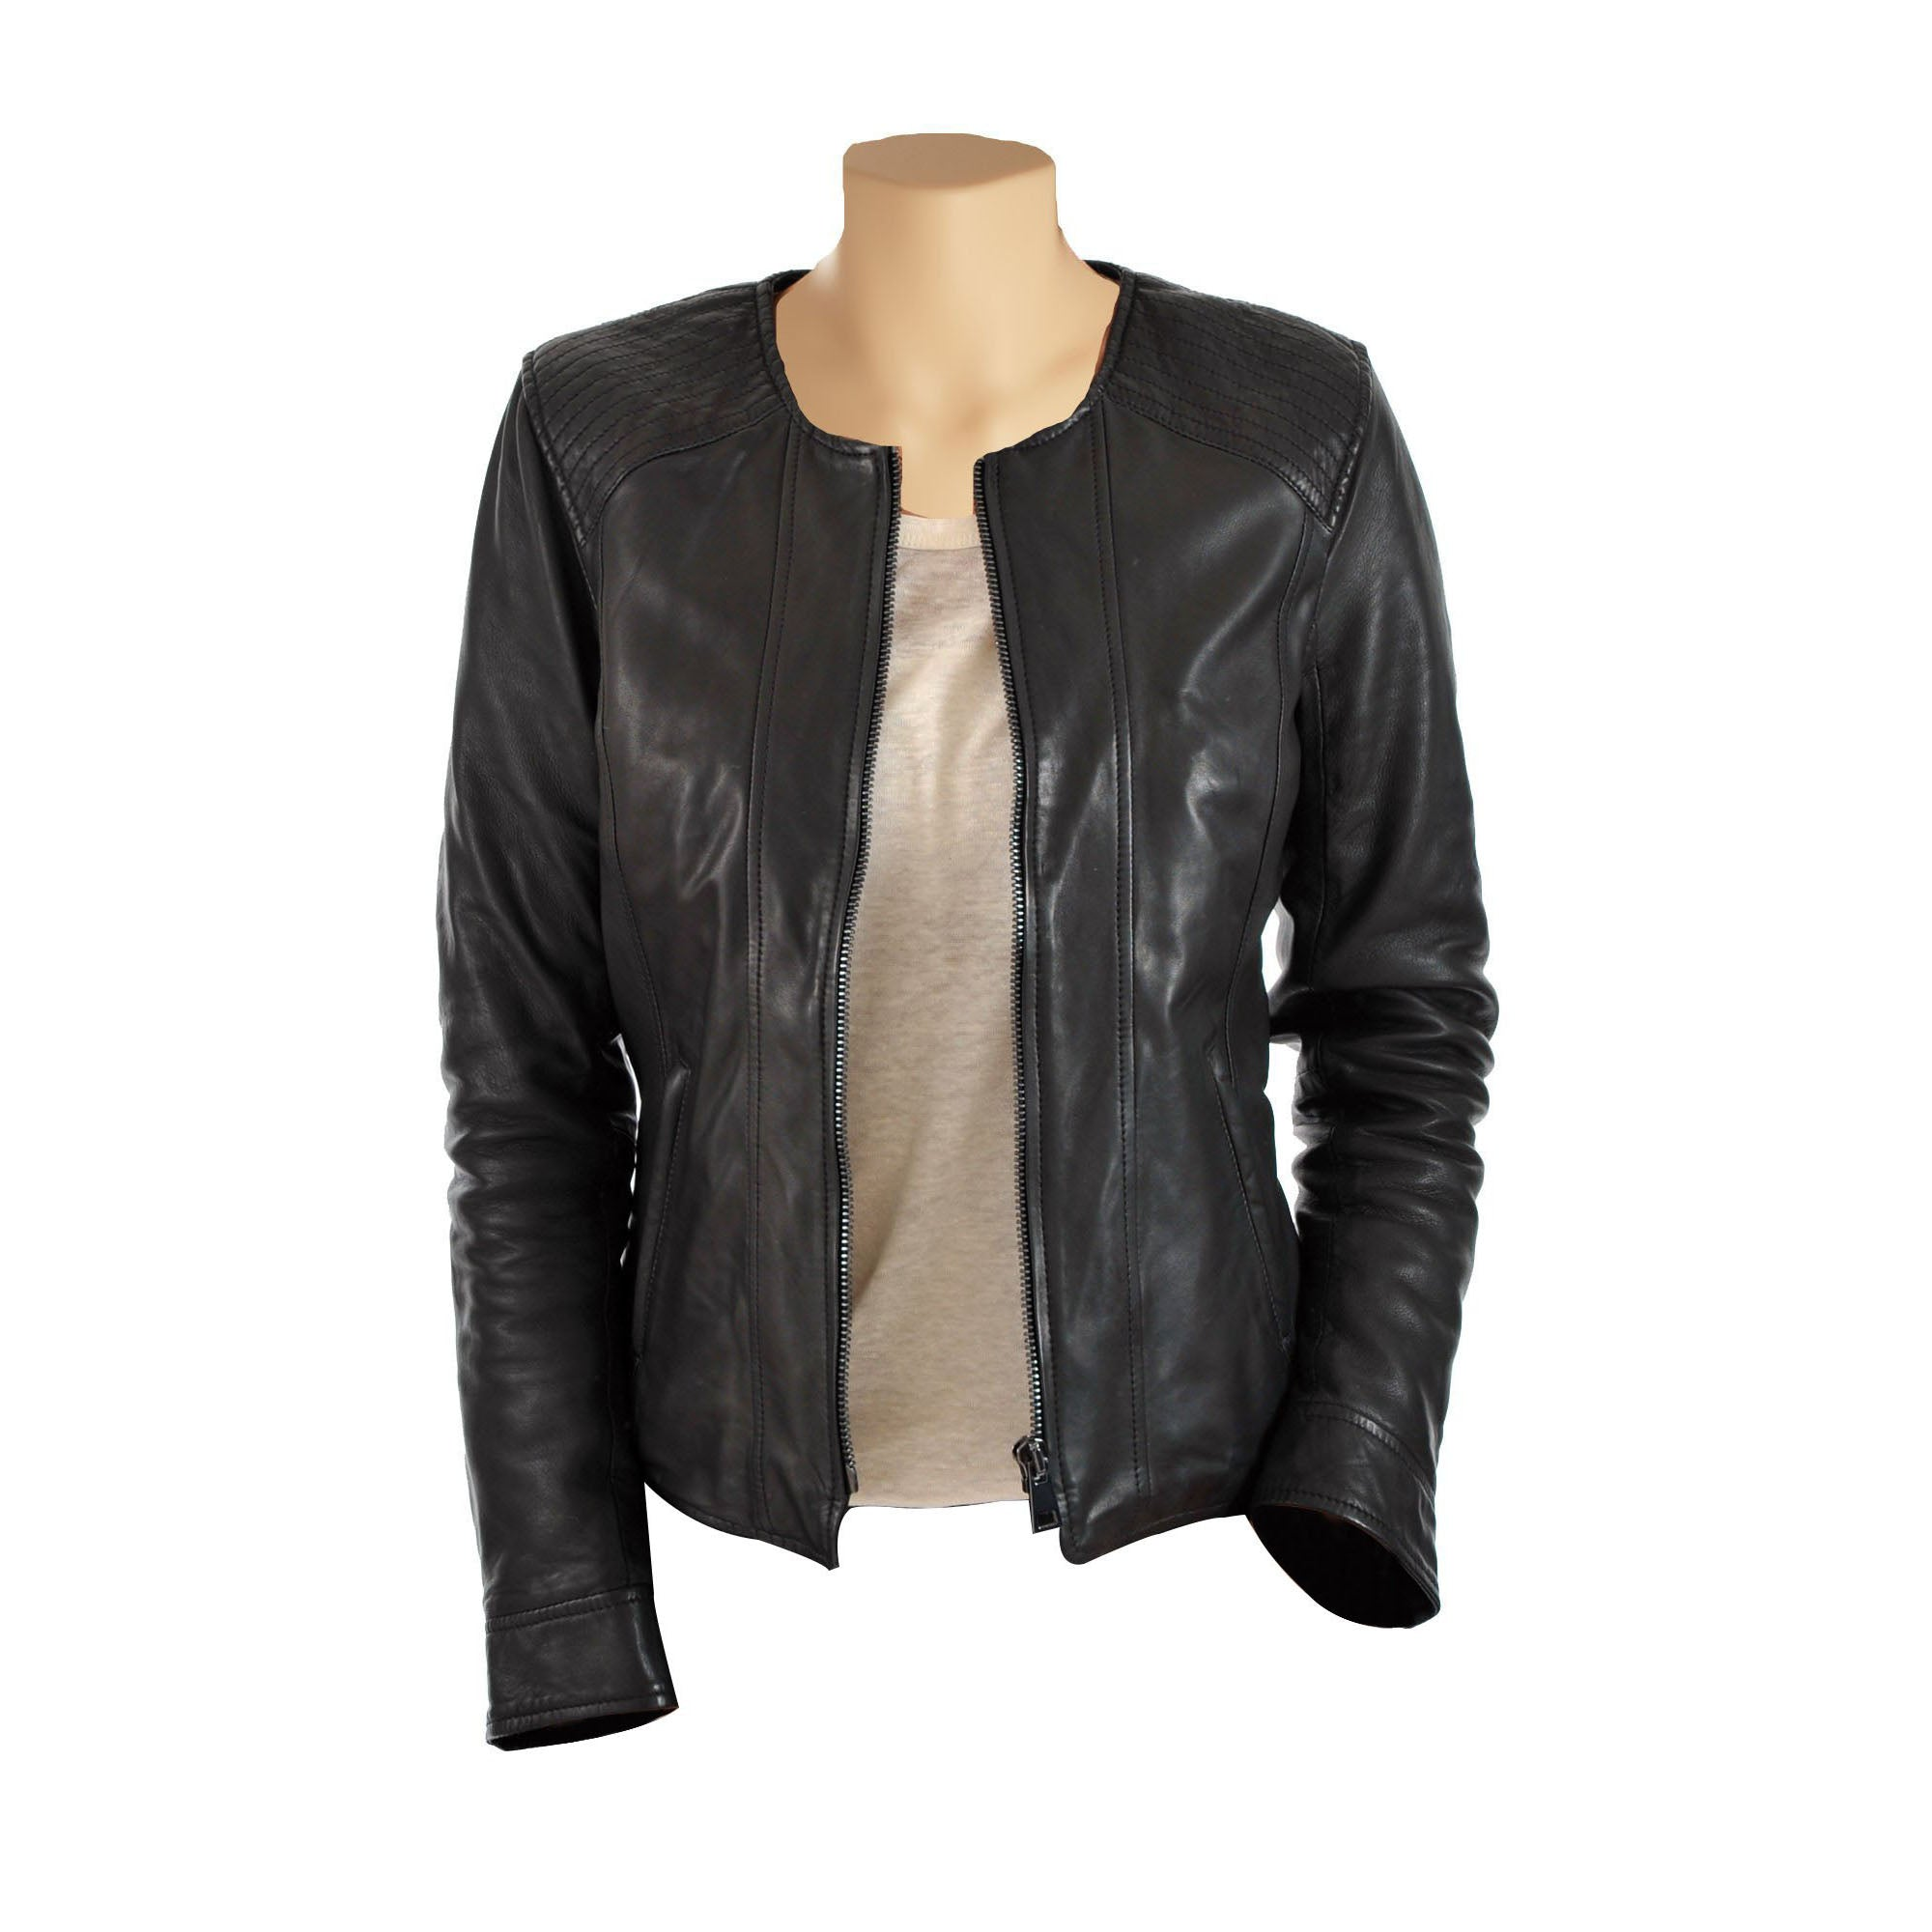 Women's collarless leather jacket - Lusso Leather